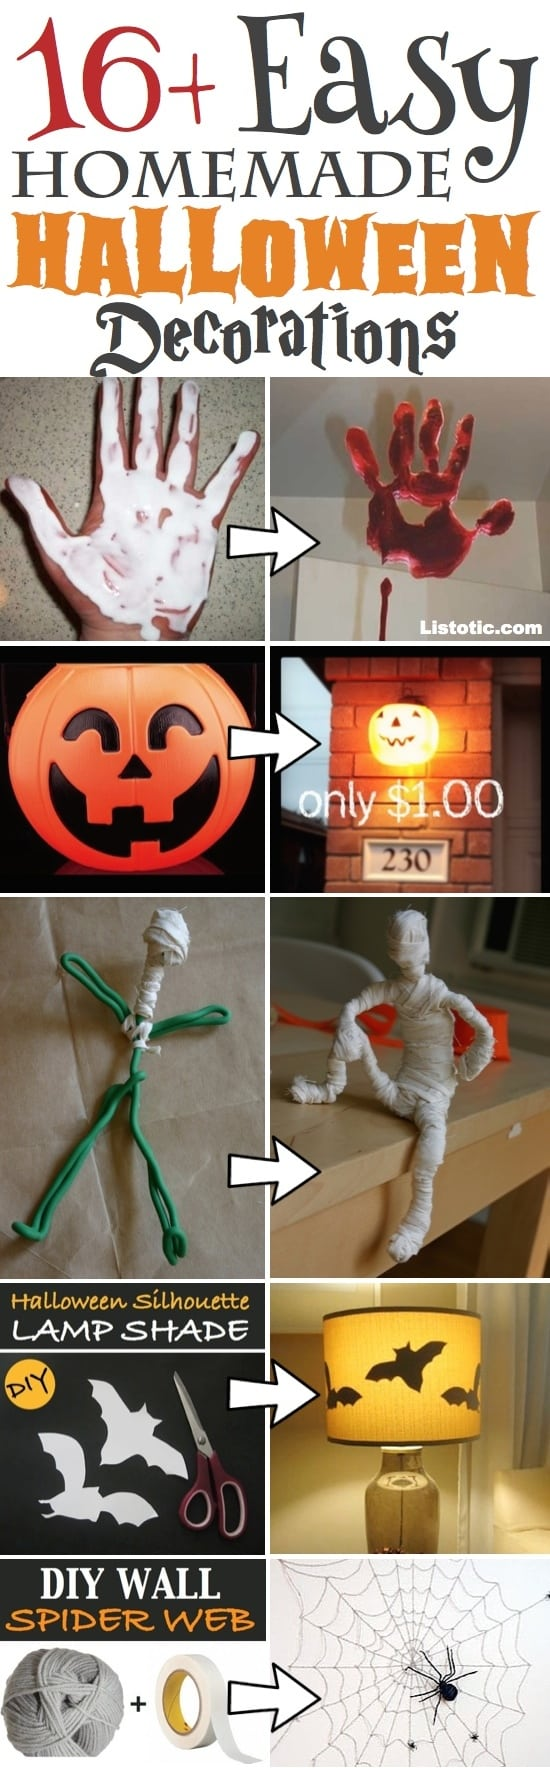 Easy homemade halloween decorations - Easy Homemade Diy Halloween Decor For Indoors And Outdoors Perfect Projects For The Front Porch